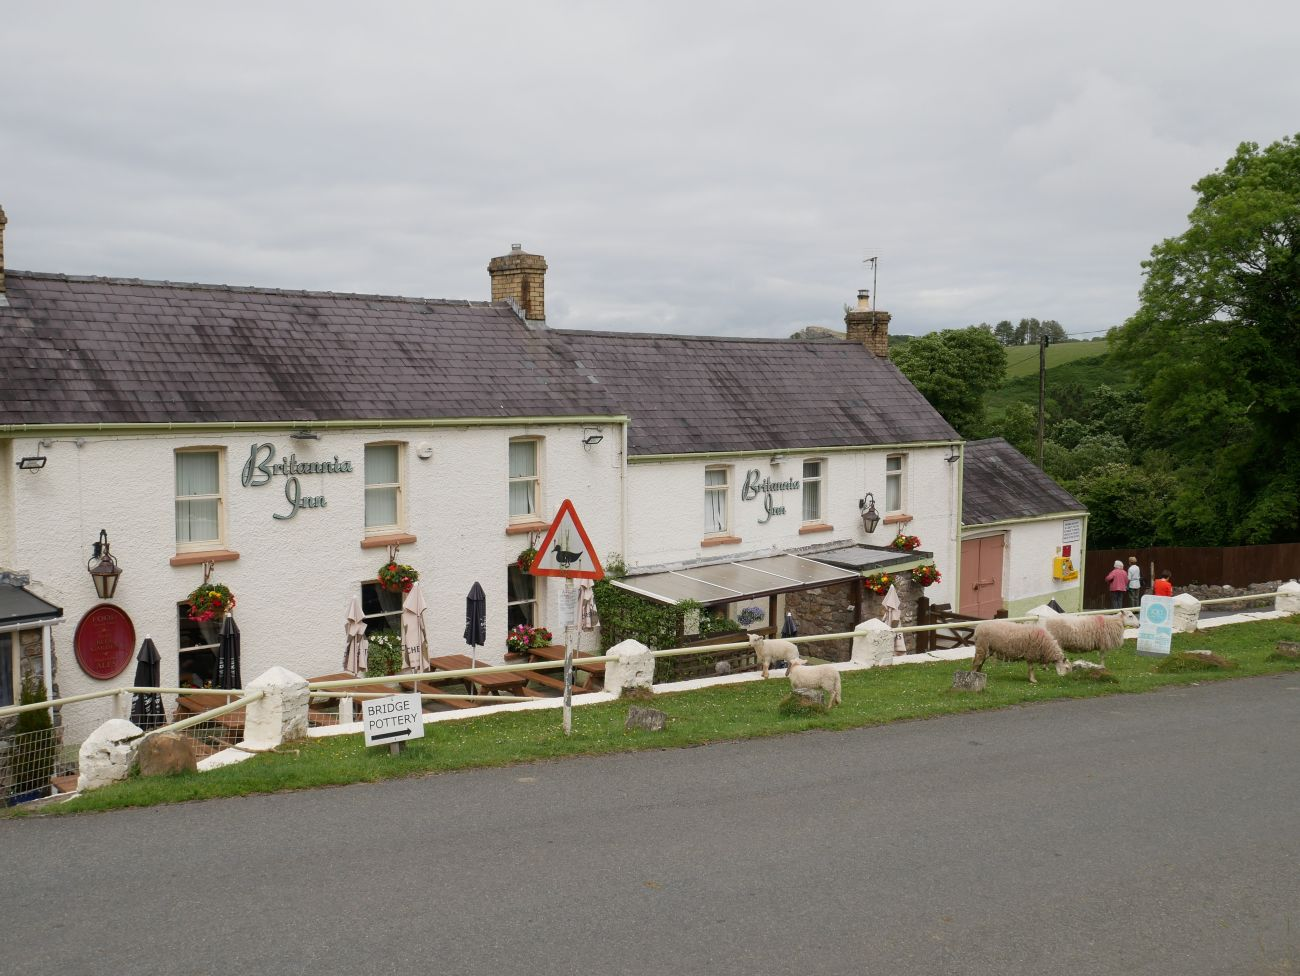 Britannia Inn in the Gower pictured from the front, with sheep grazing on the grass